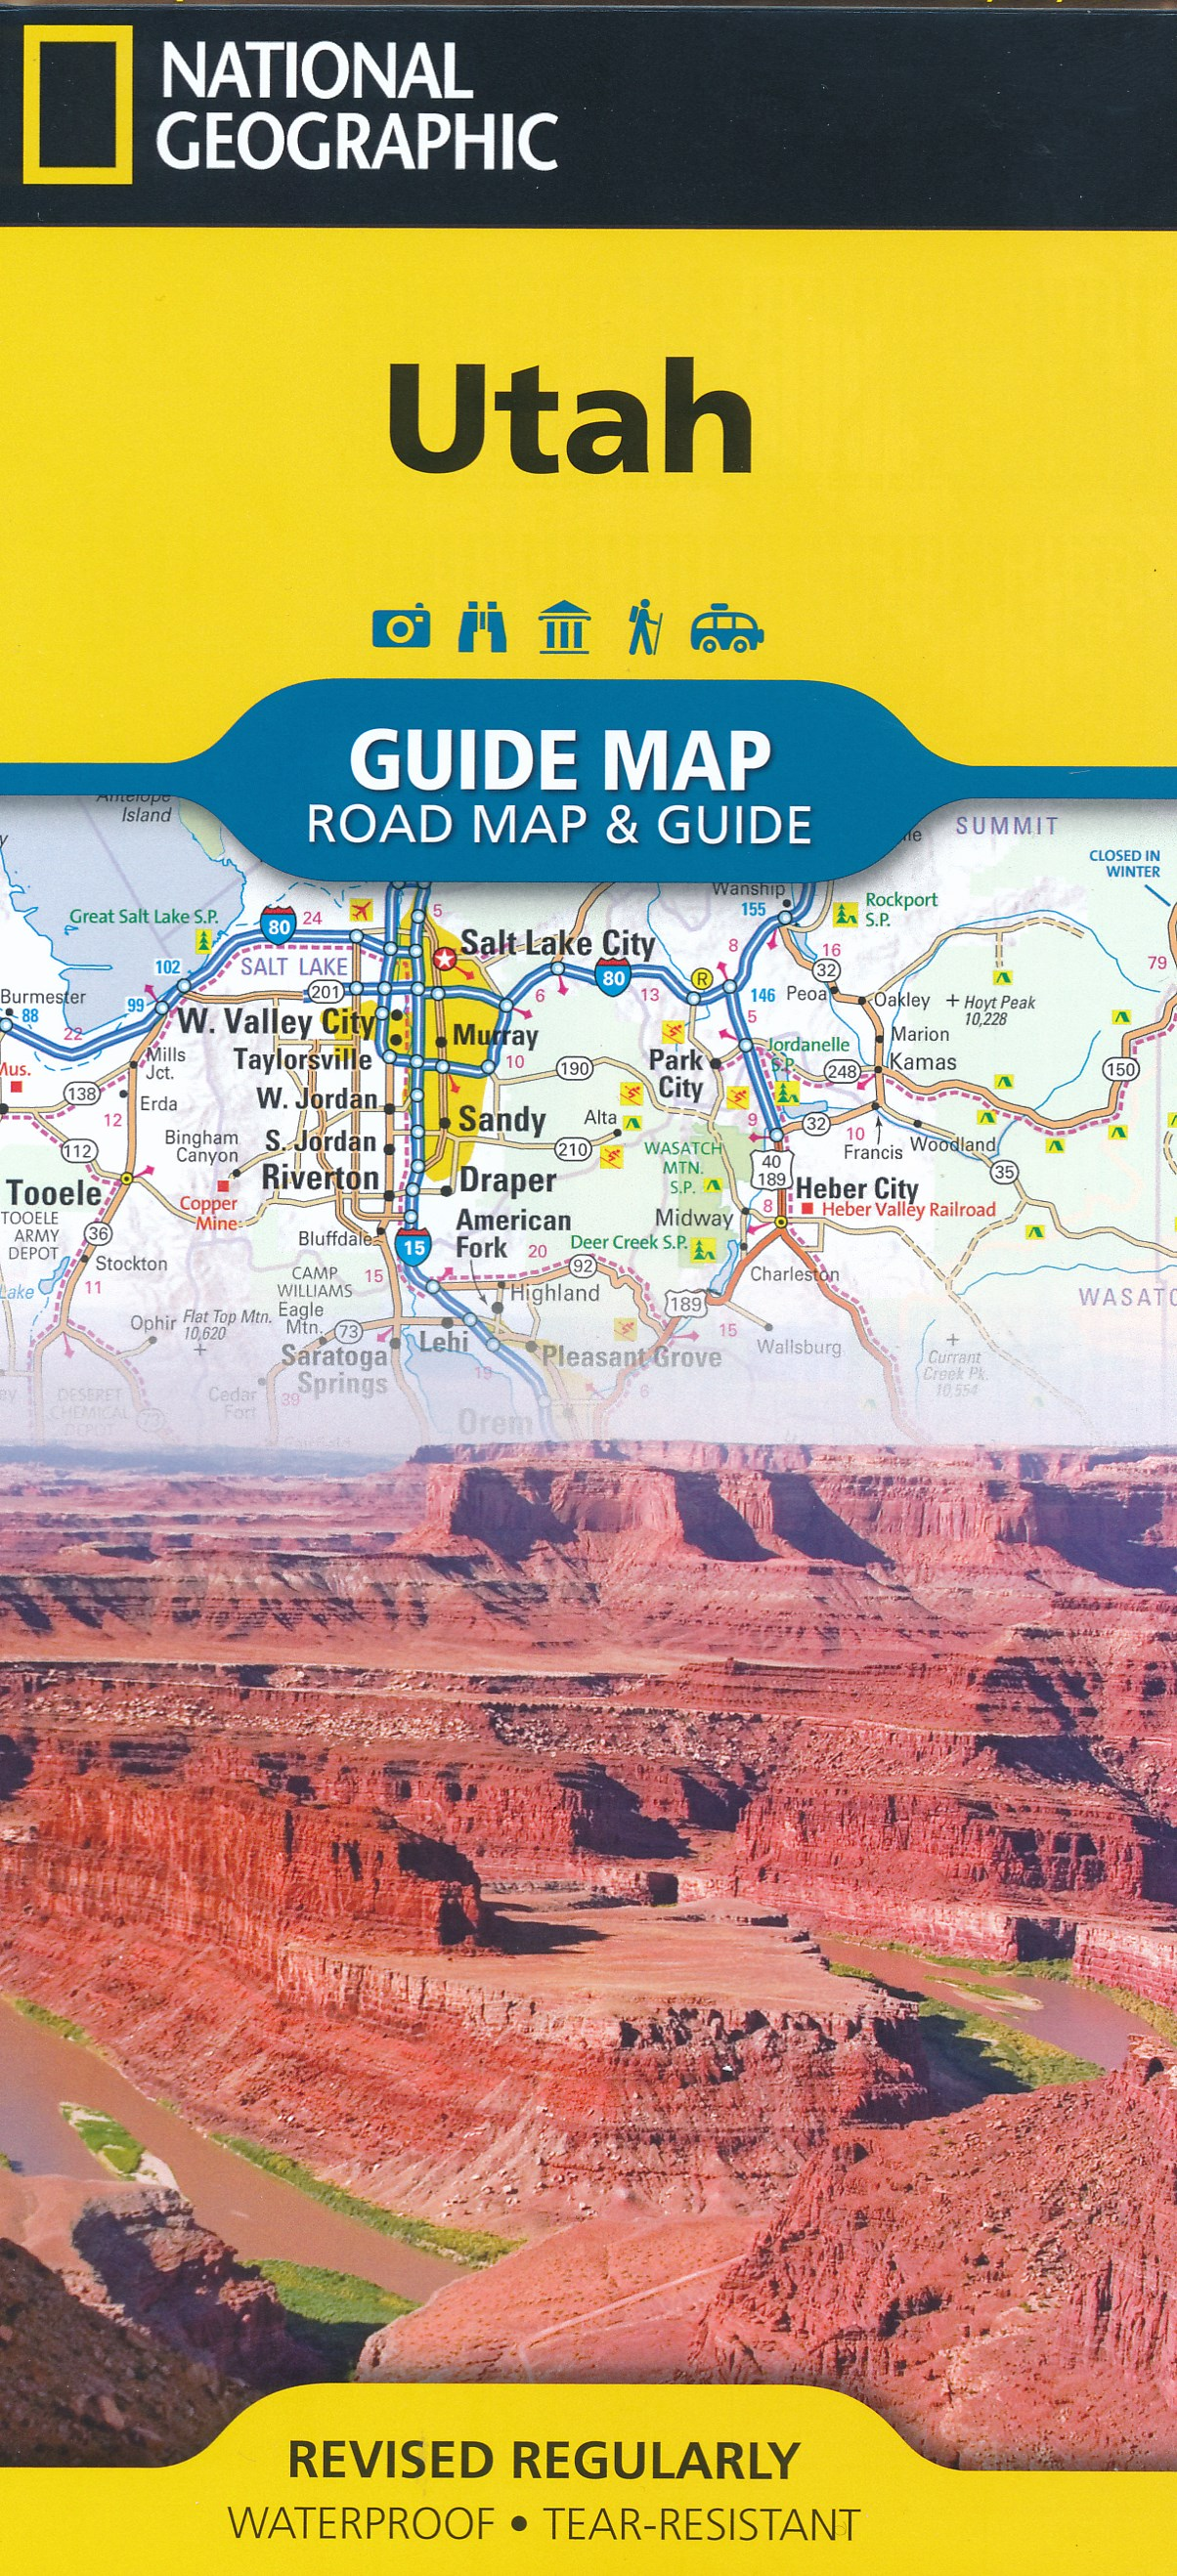 Wegenkaart - landkaart Guide Map Utah | National Geographic